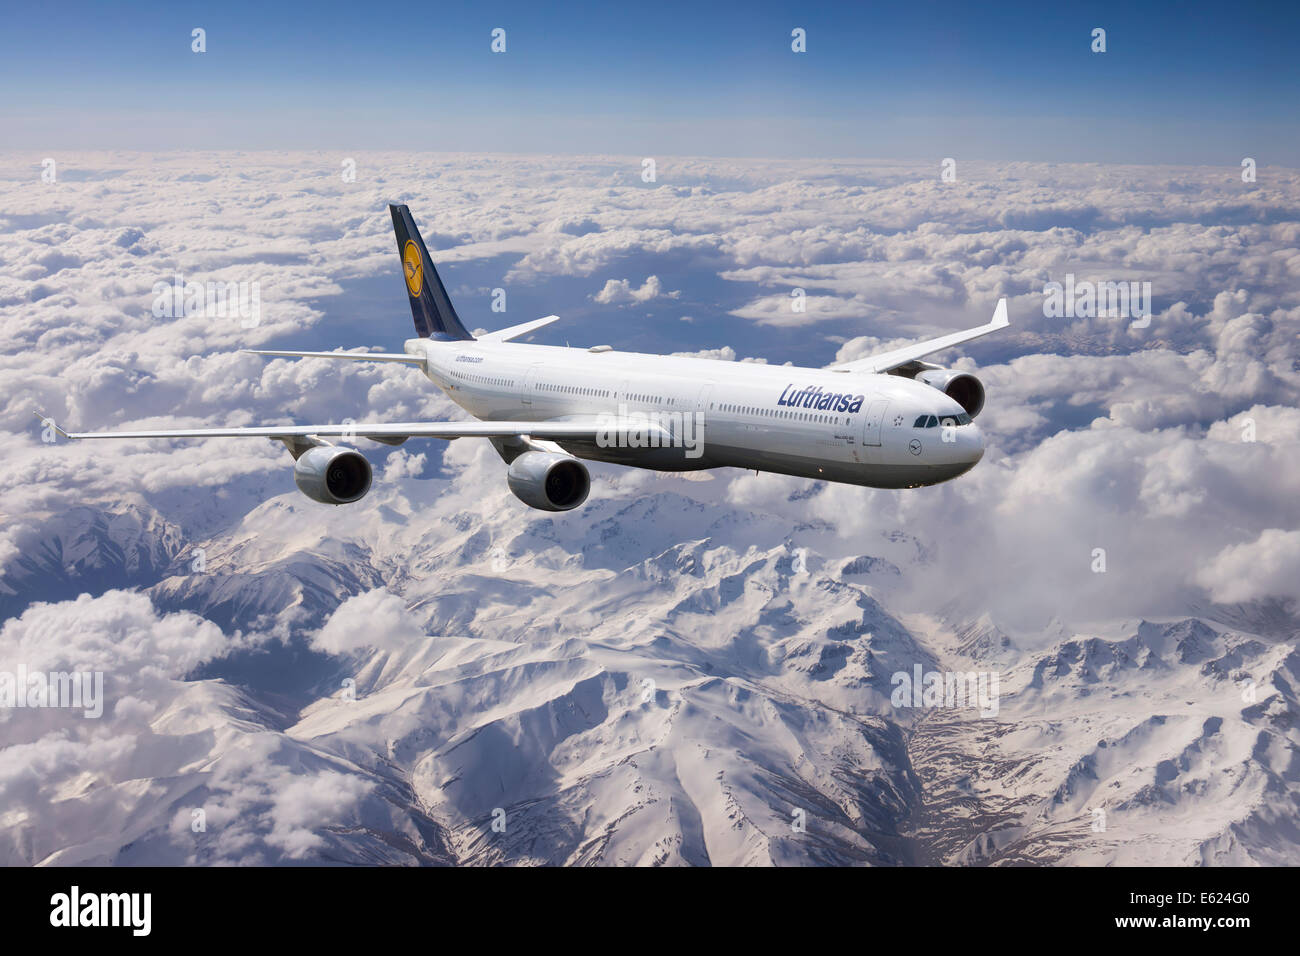 Lufthansa Airbus A340 in flight, over mountains, Turkey - Stock Image